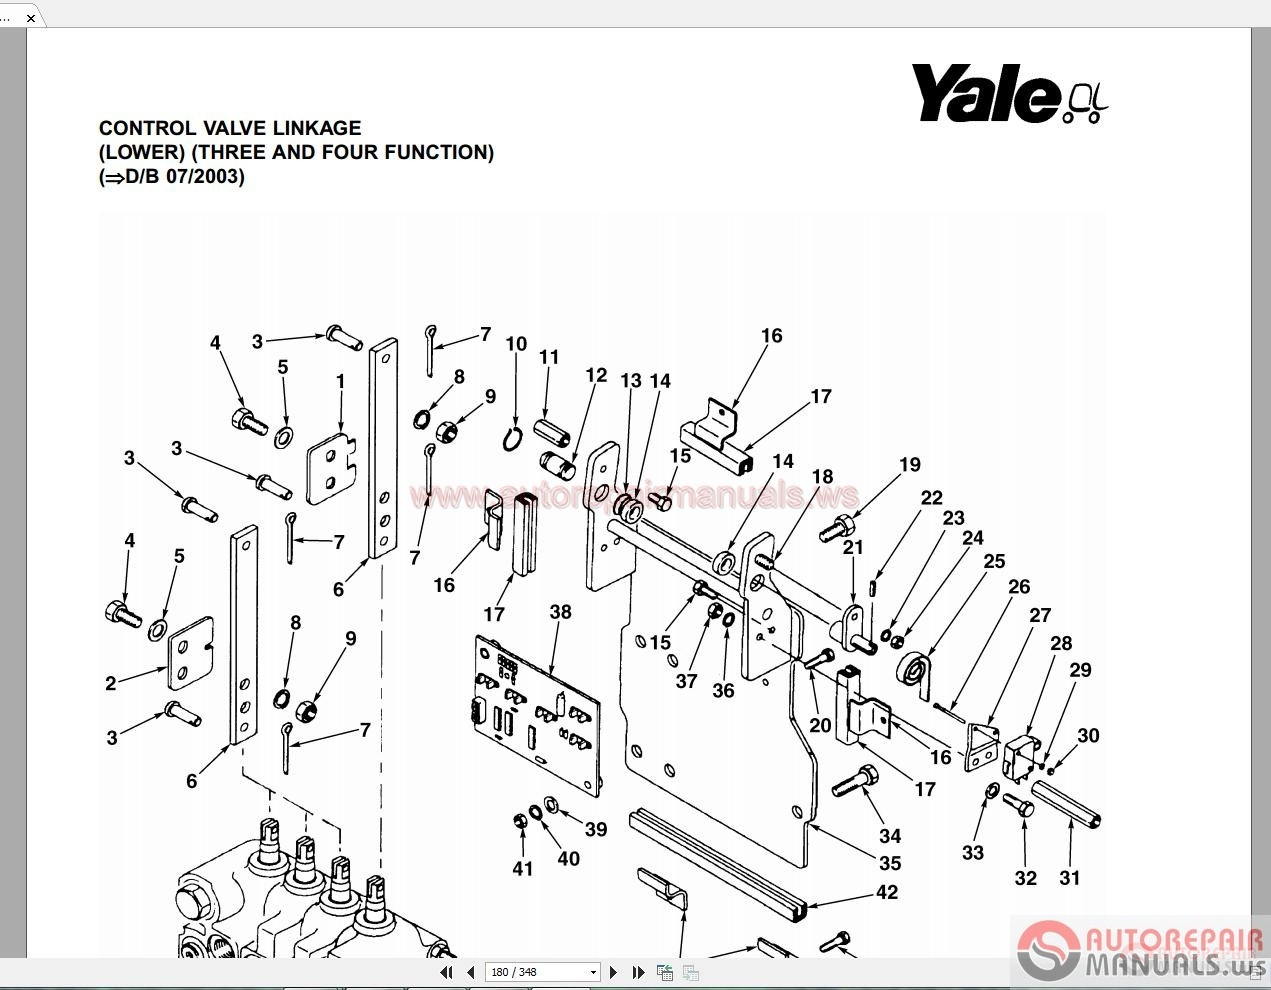 Yale Forklift Spare Parts Full Set